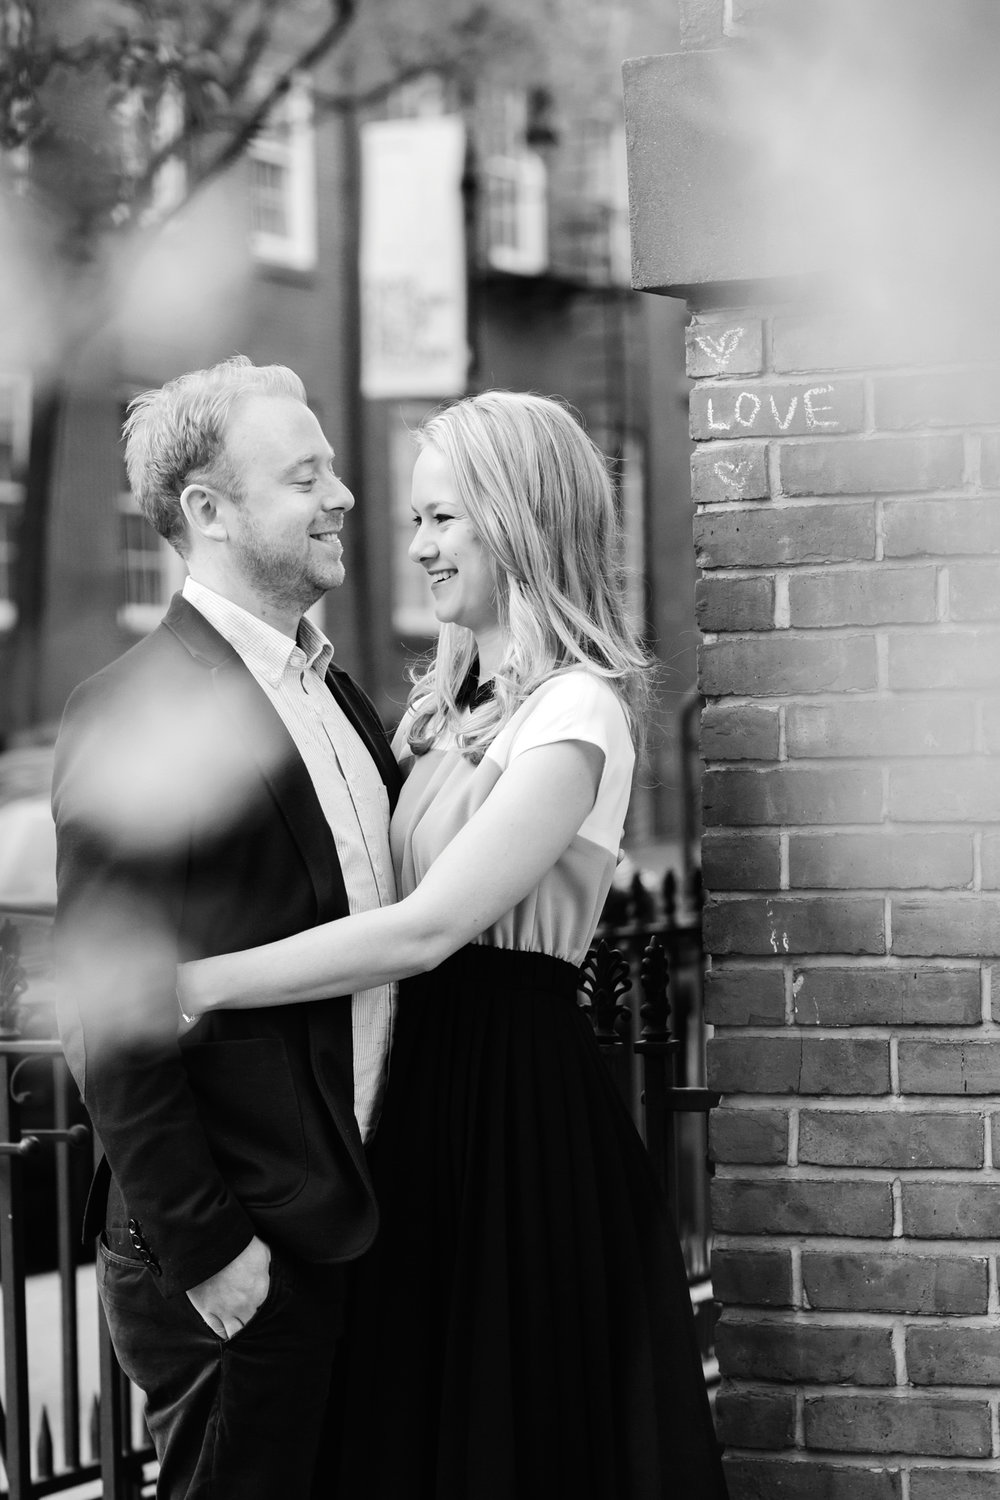 06b_Kasey_Paul_West_Village_The_Highline_NYC_Engagement_Tanya_Salazar_Photography_006.jpg